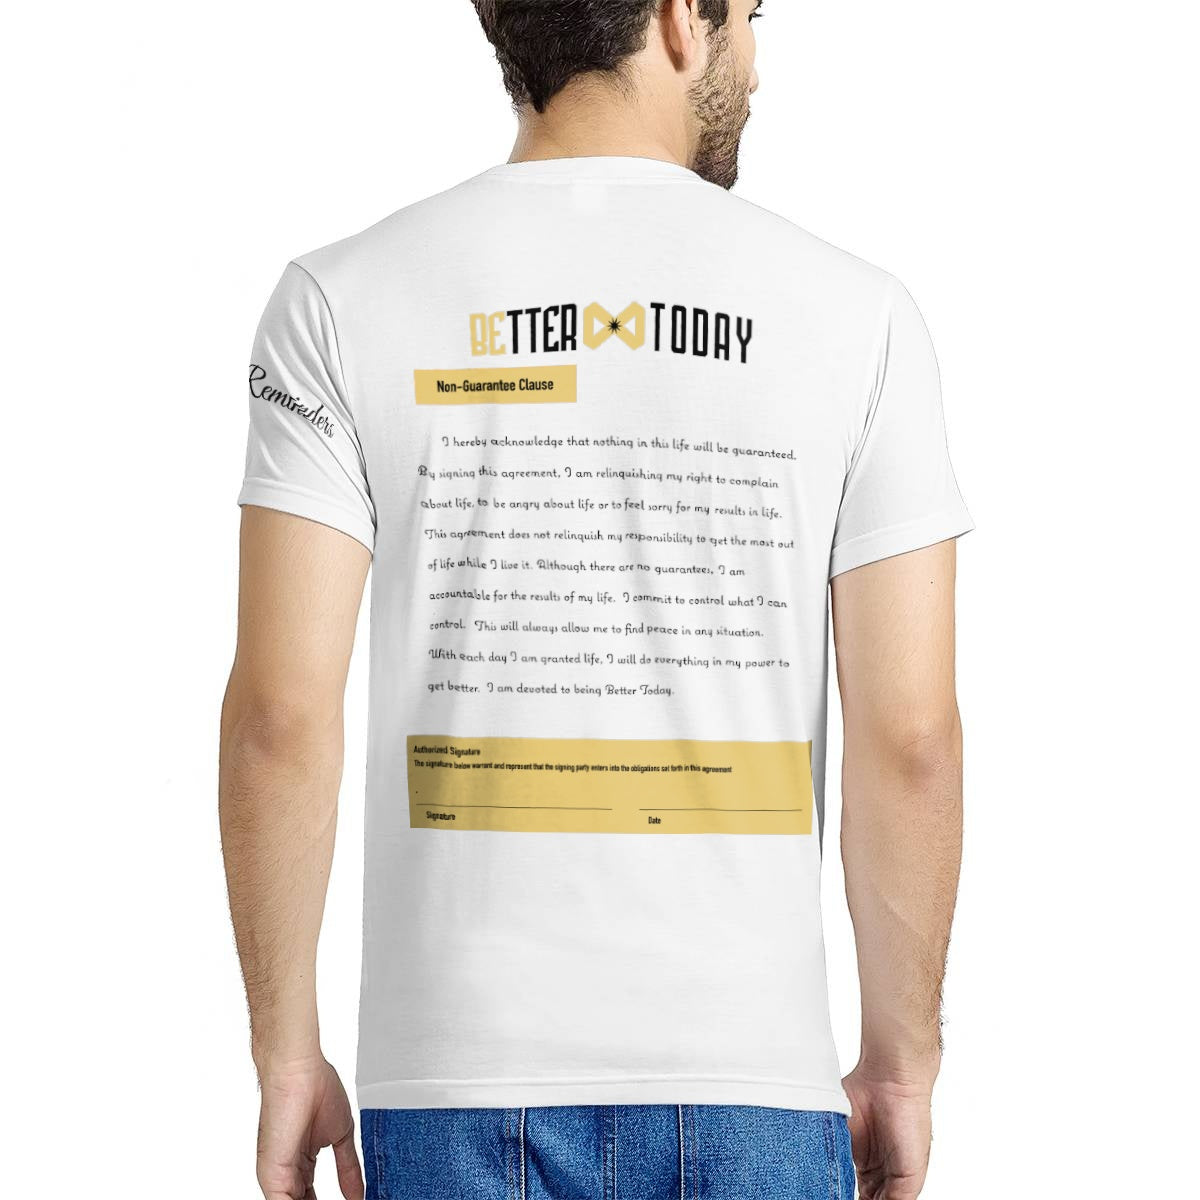 Better Today Non-Guarantee T-shirt